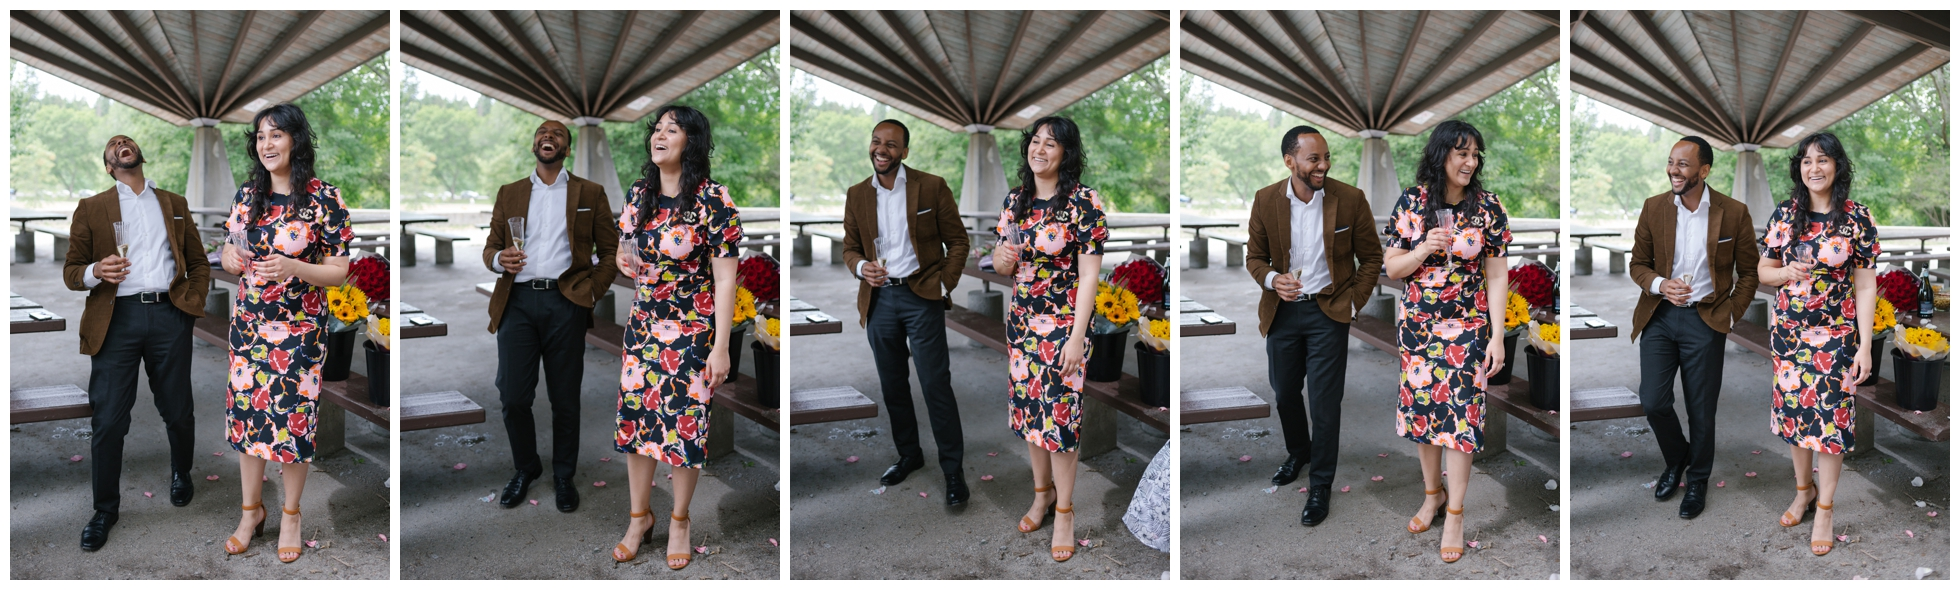 Tara and Petros Engagement Session (Life by Selena Photography)_0042.jpg